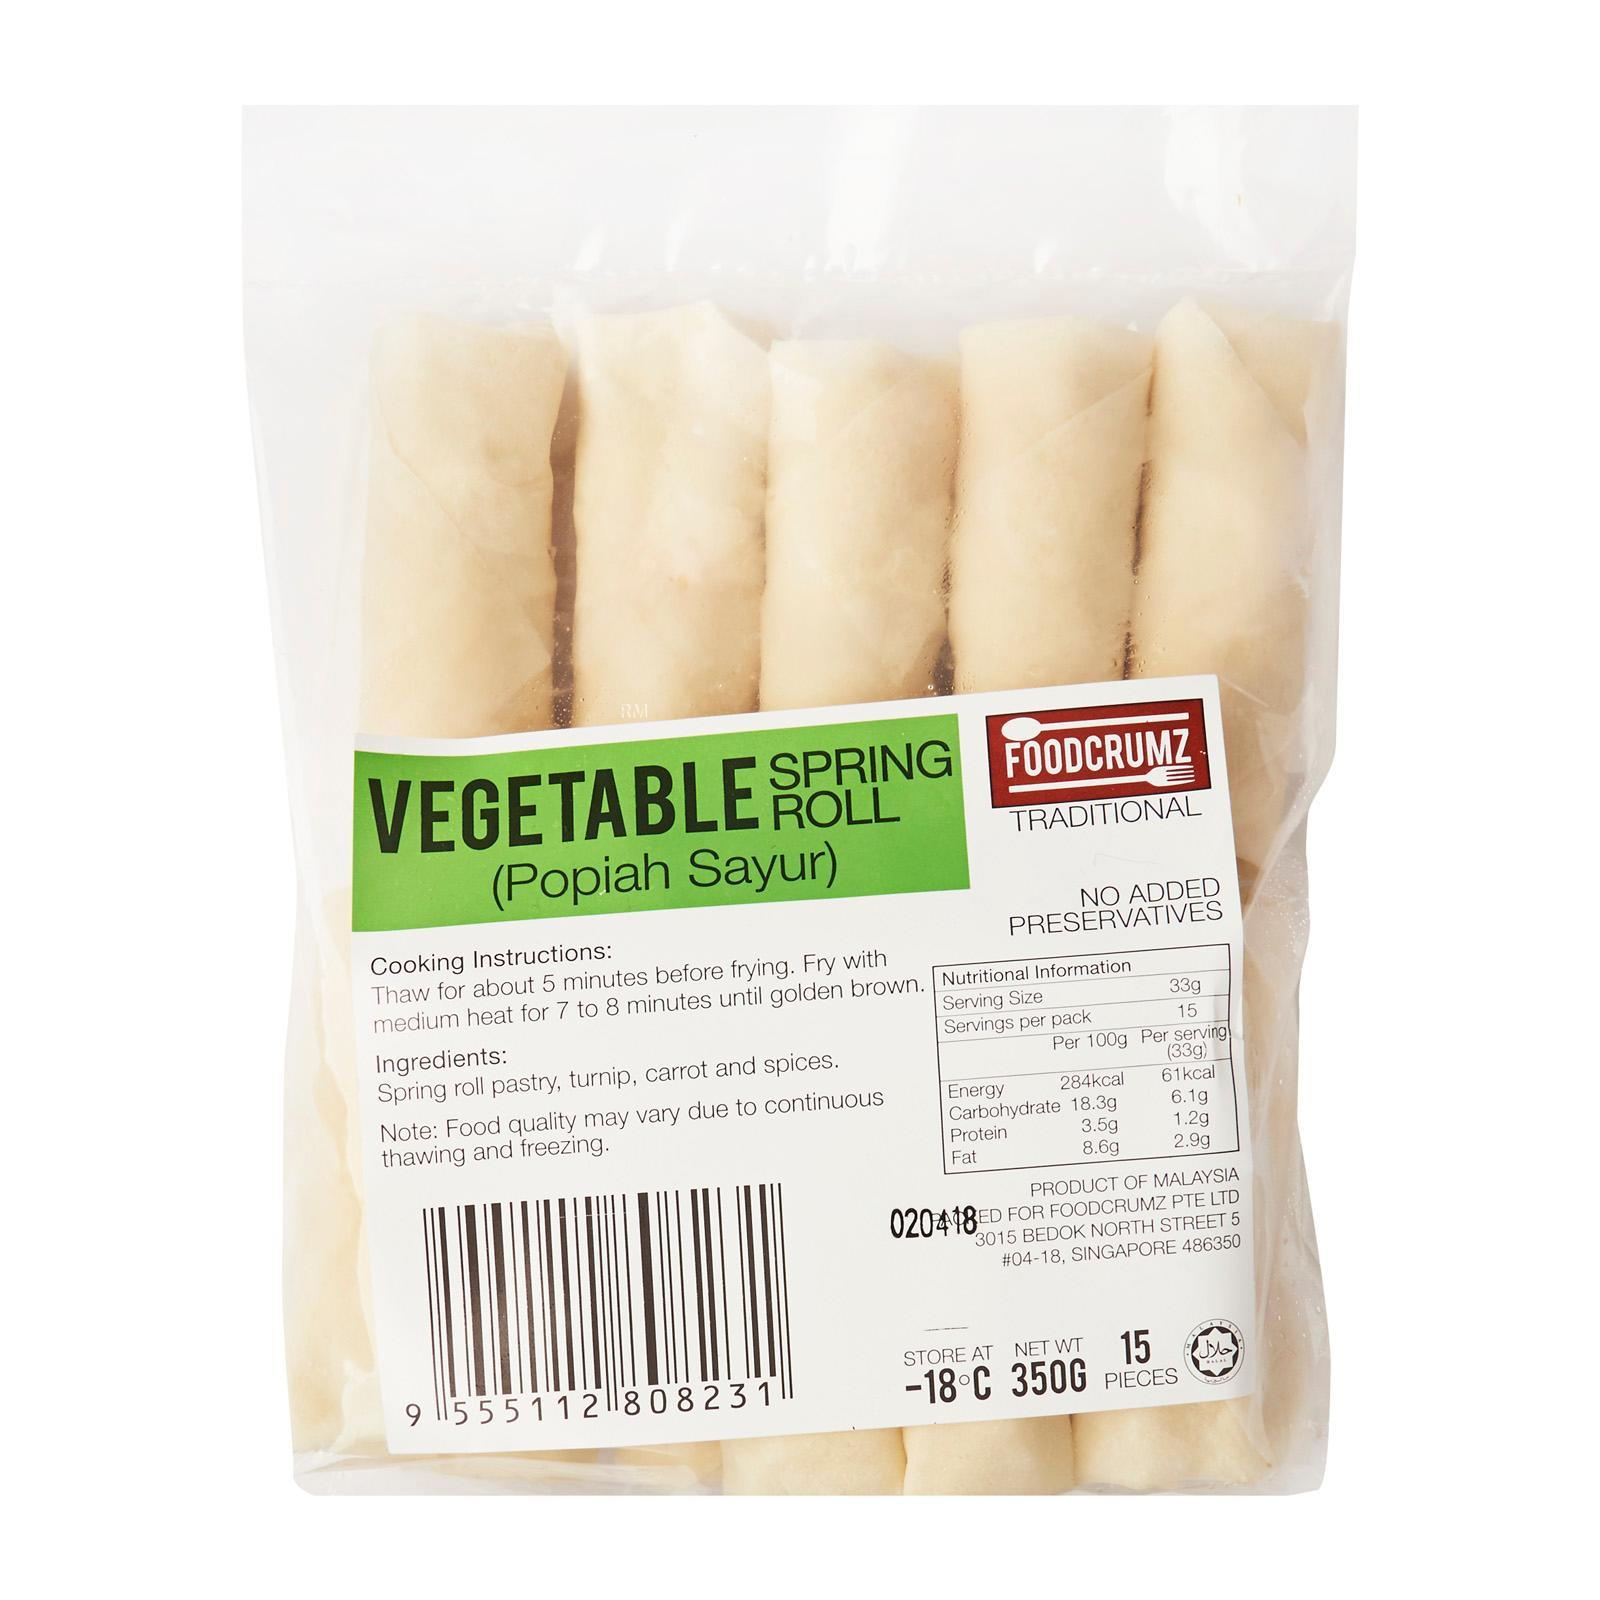 Foodcrumz Vegetable Spring Roll - Frozen